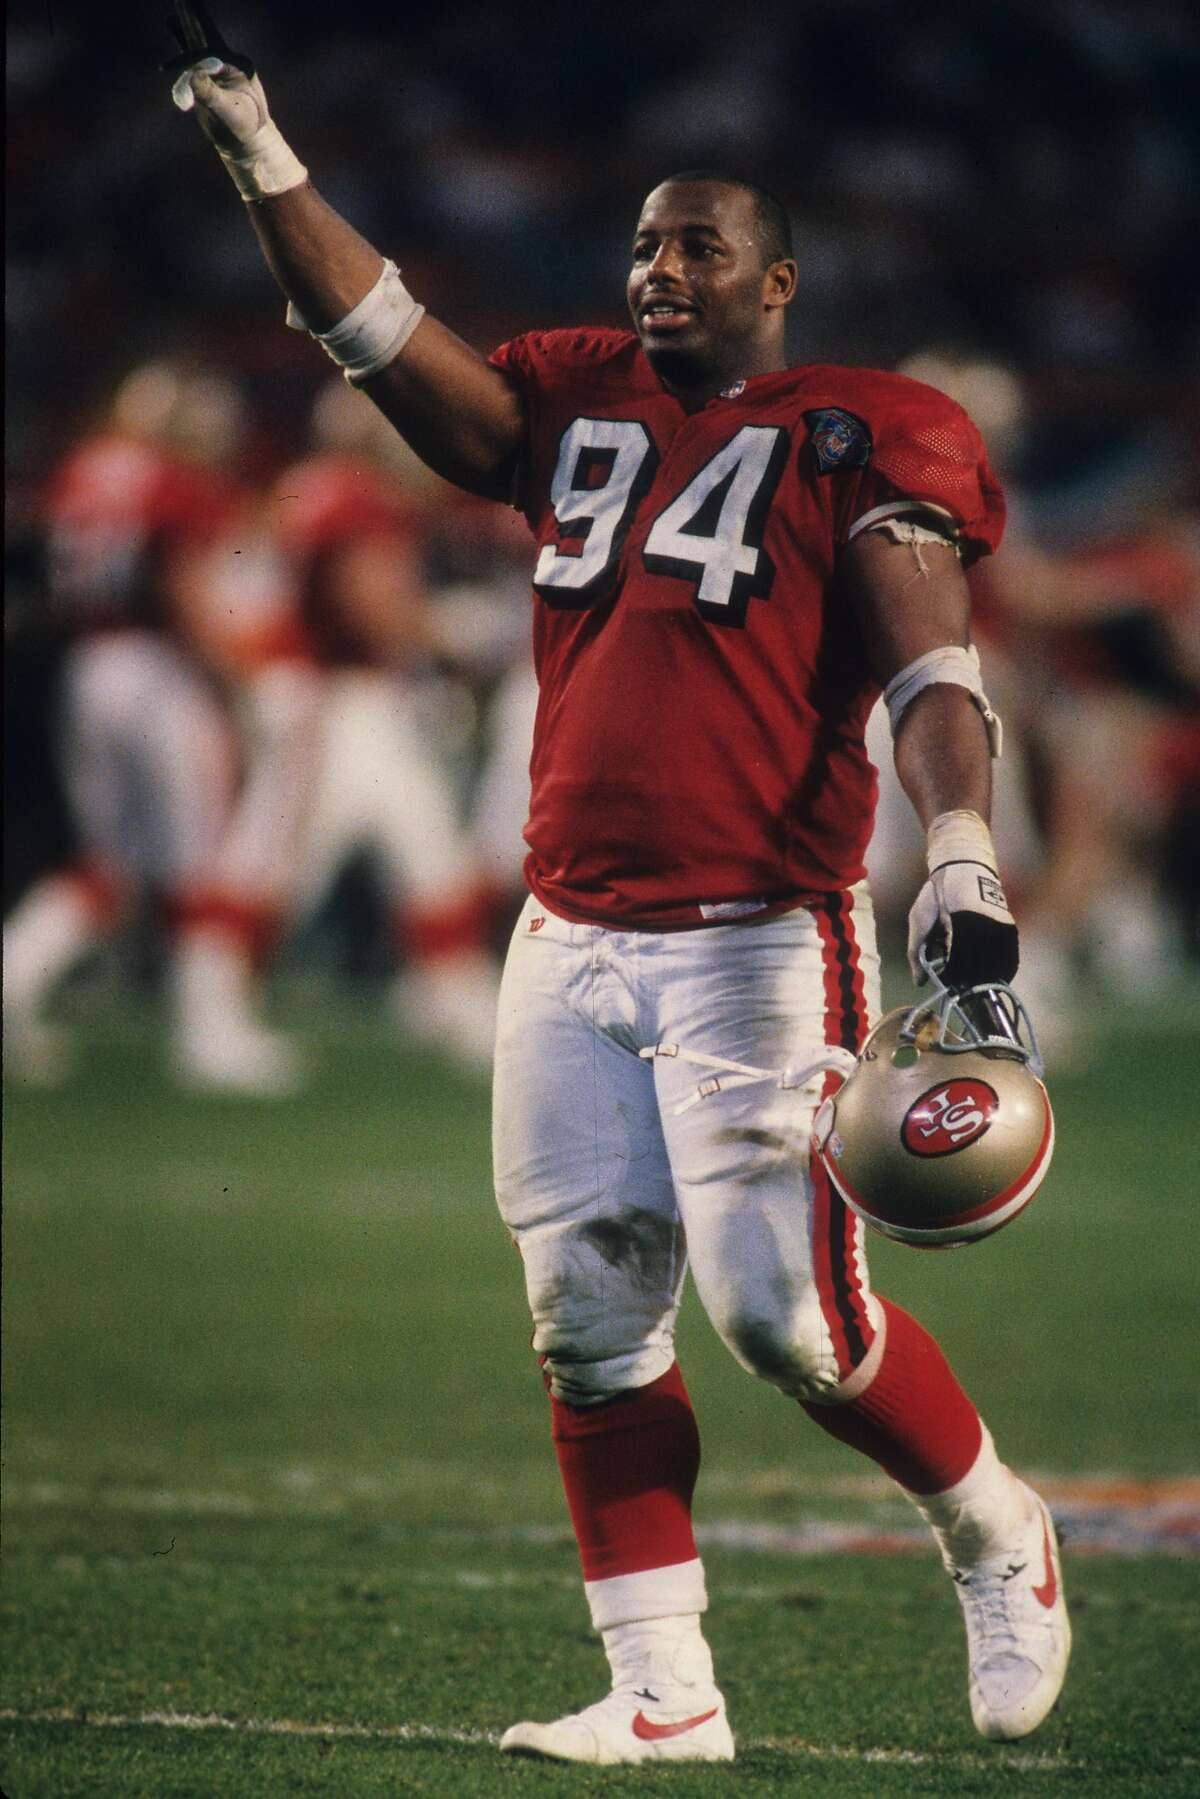 MIAMI, FL - JANUARY 29: Defensive tackle Dana Stubblefield #94 of the San Francisco 49ers celebrates against the San Diego Chargers in Super Bowl XXIX at Joe Robbie Stadium on January 29, 1995 in Miami, Florida. The 49ers defeated the Chargers 49-26. (Photo by Joseph Patronite /Getty Images)